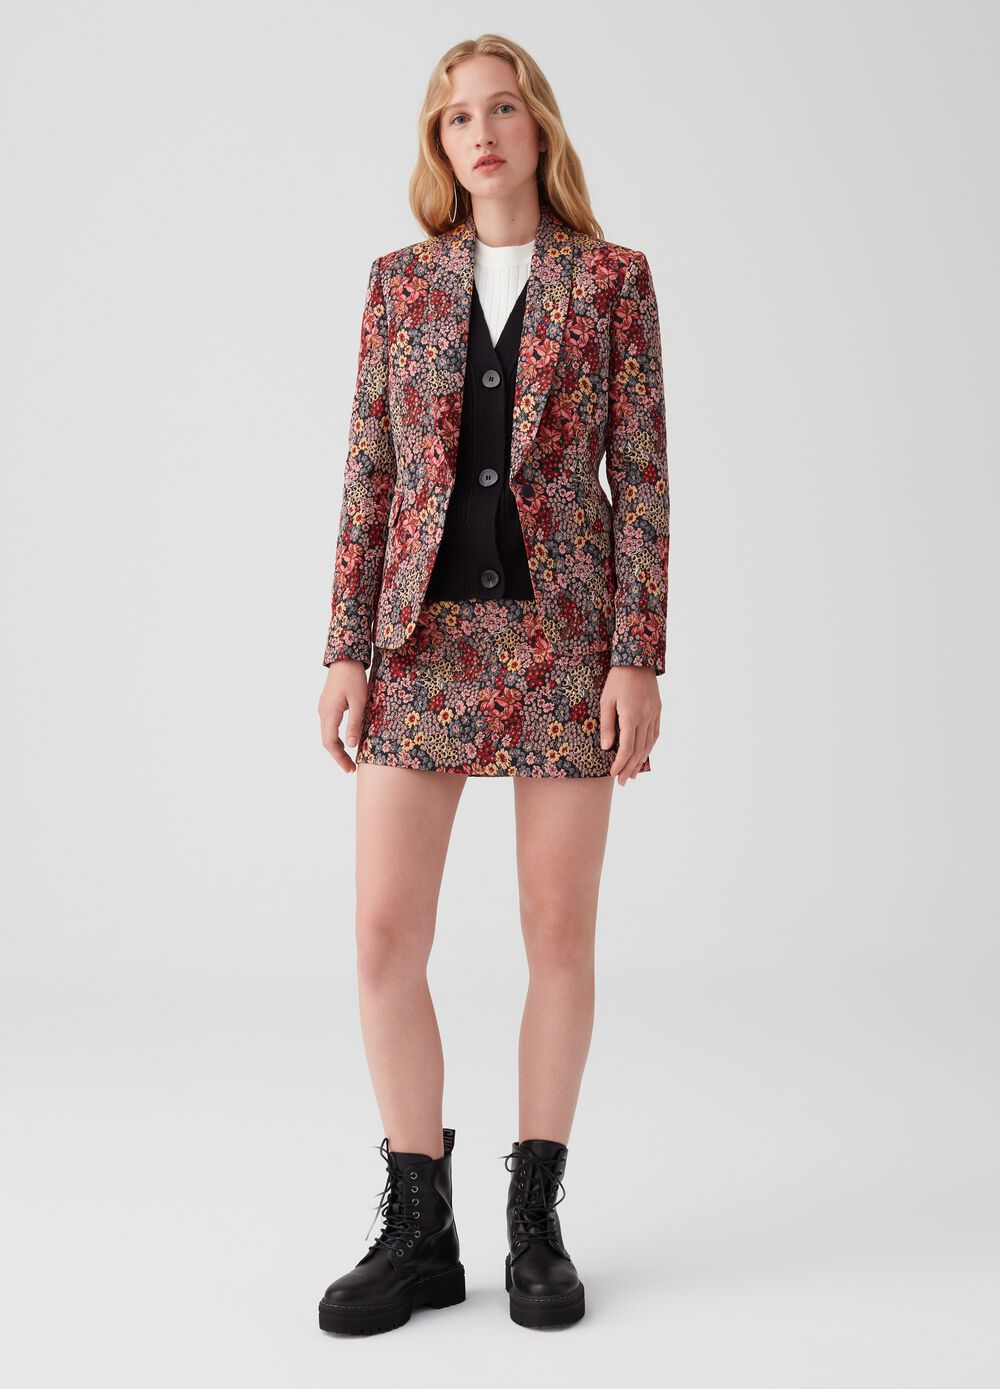 A-line mini skirt with floral jacquard